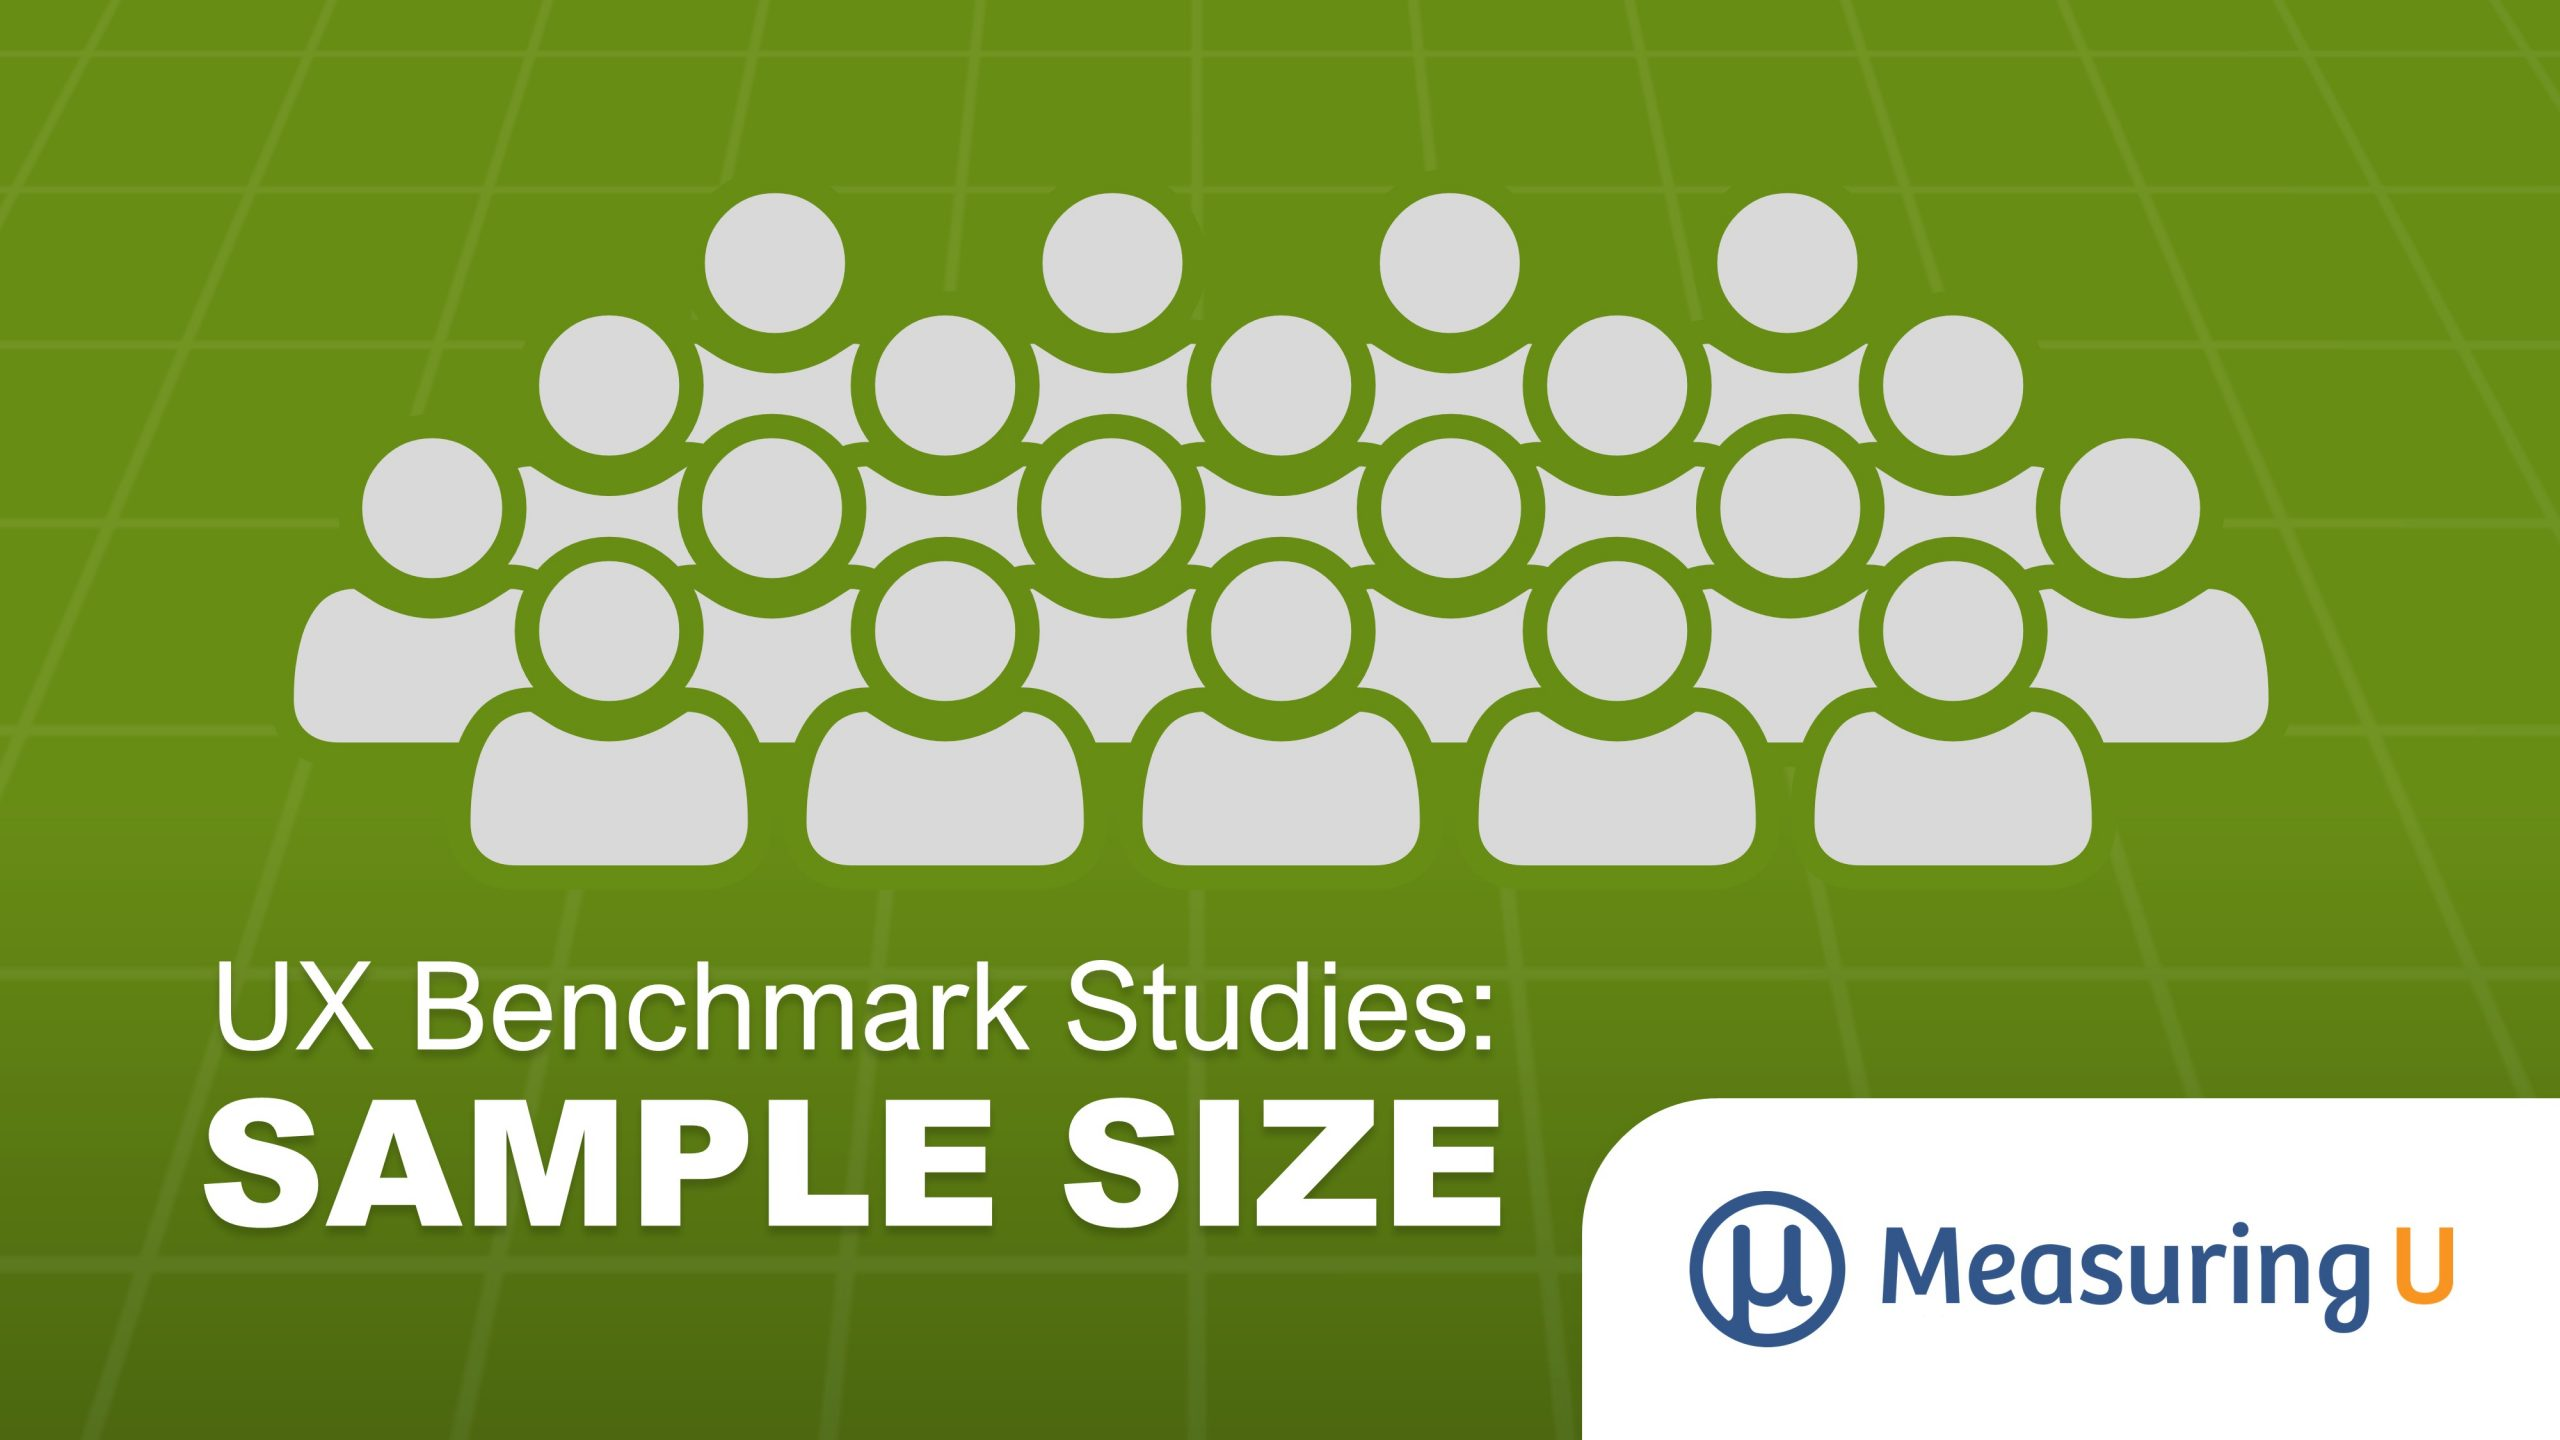 Sample Size Recommendations for Benchmark Studies